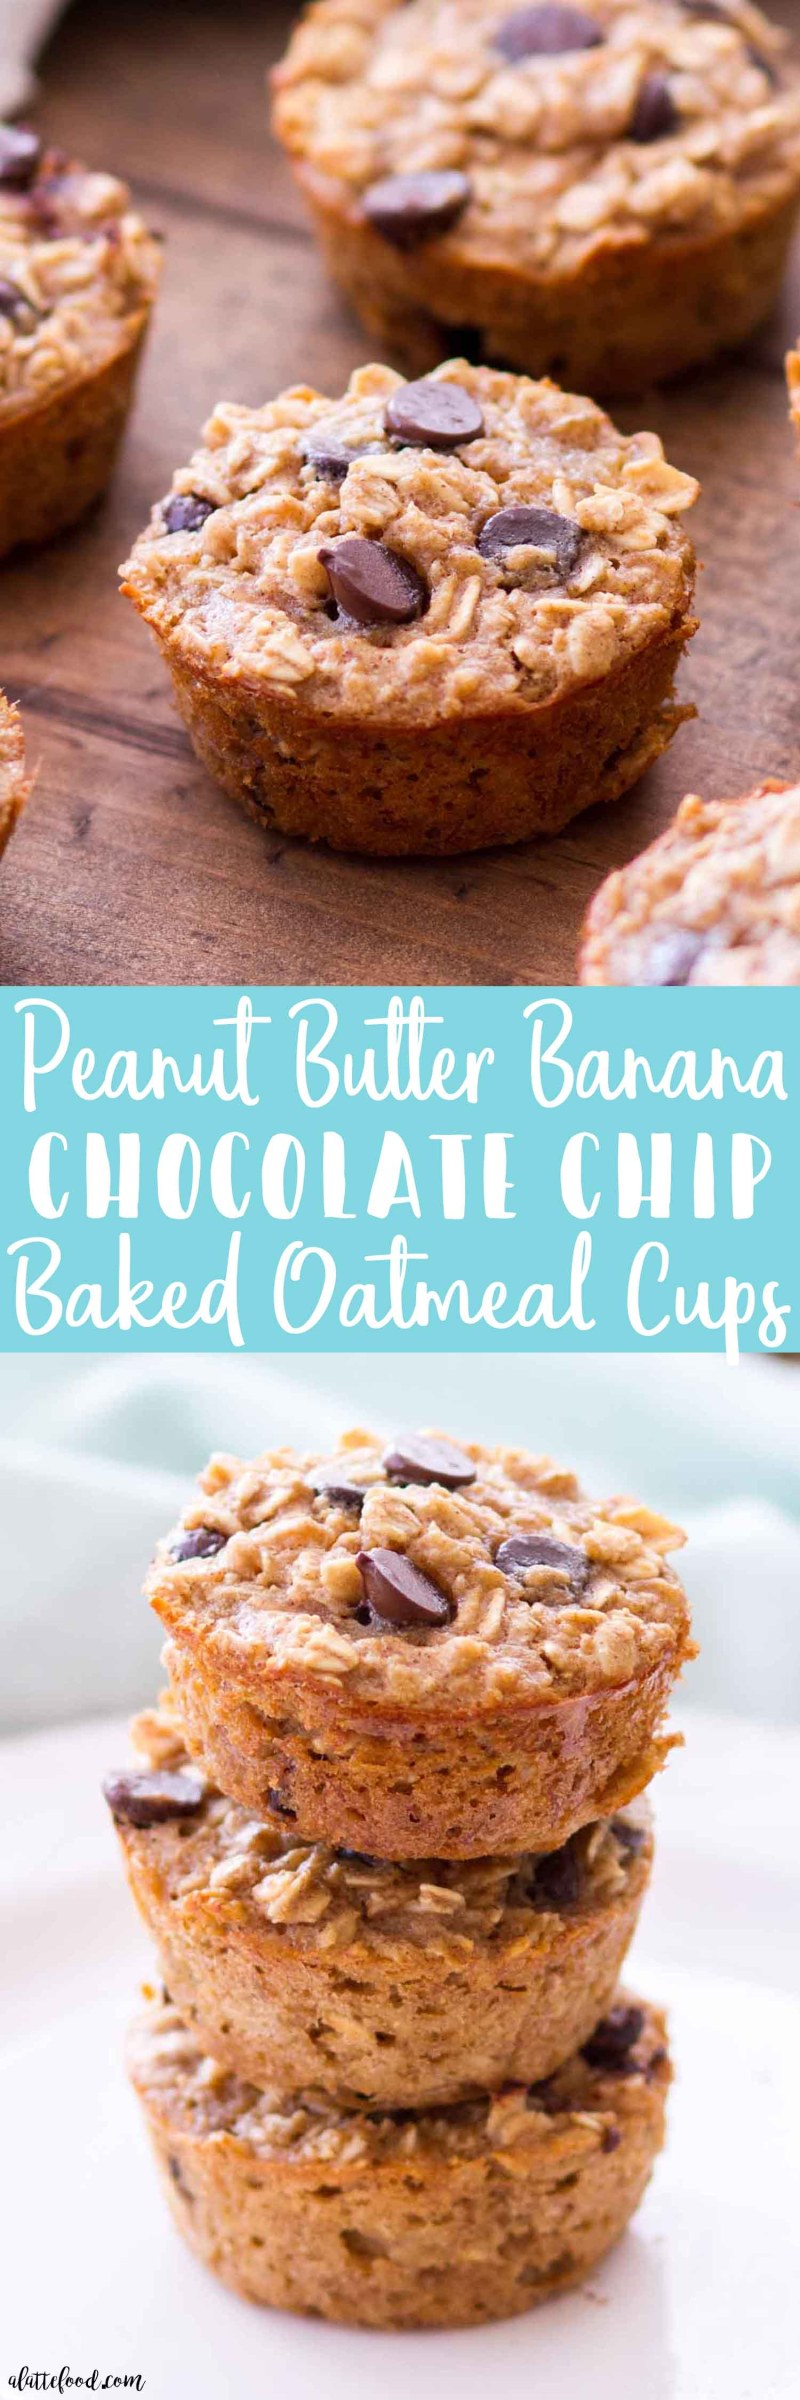 Peanut Butter Banana Chocolate Chip Baked Oatmeal Cups -- These easy baked oatmeal cups are full of peanut butter, bananas, and chocolate chips! These Peanut Butter Banana Chocolate Chip Baked Oatmeal Cups are gluten-free, and they can be made ahead of time for a quick-and-easy breakfast recipe! Plus, these baked oatmeal cups are made with maple syrup instead of refined sugar! Plus a step-by-step video below! baked oatmeal cups, quick breakfast ideas, homemade oatmeal